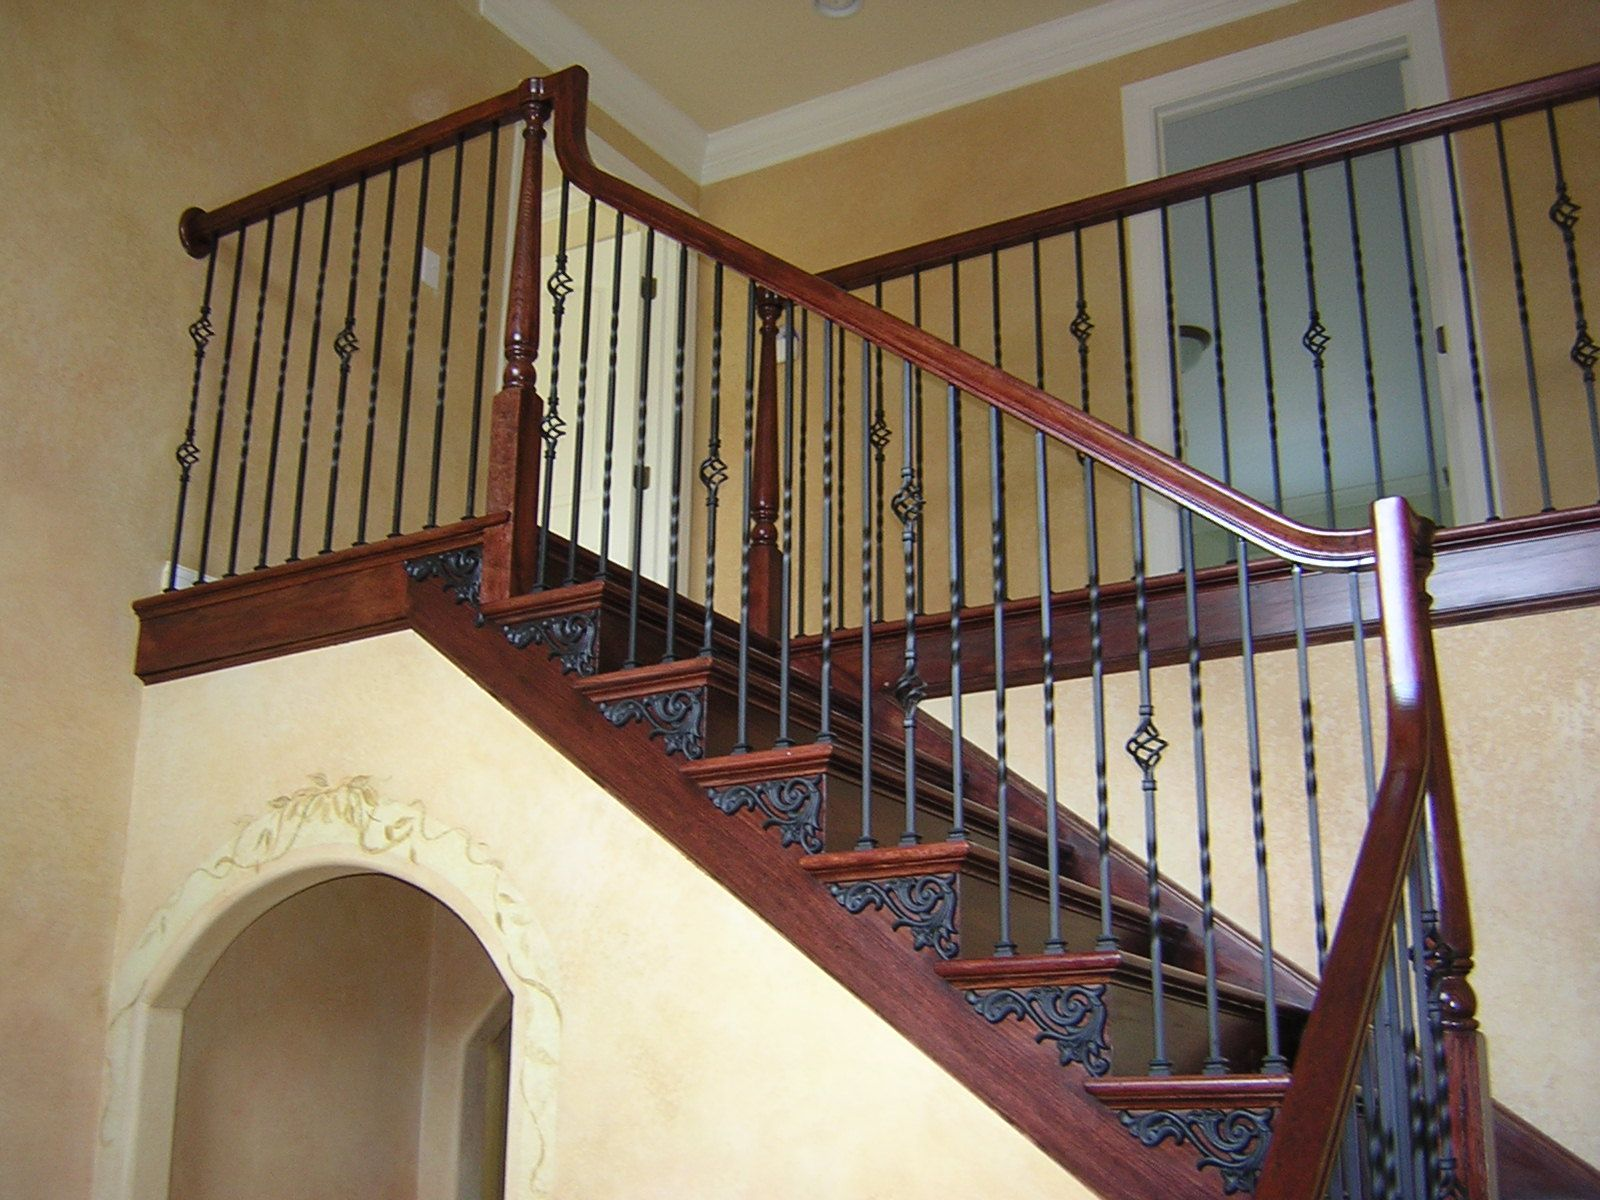 railings for handrail stand that out wooden creative modern railing staircase point incredible the in focal a stair designs contemporary are stairs interior make inside these